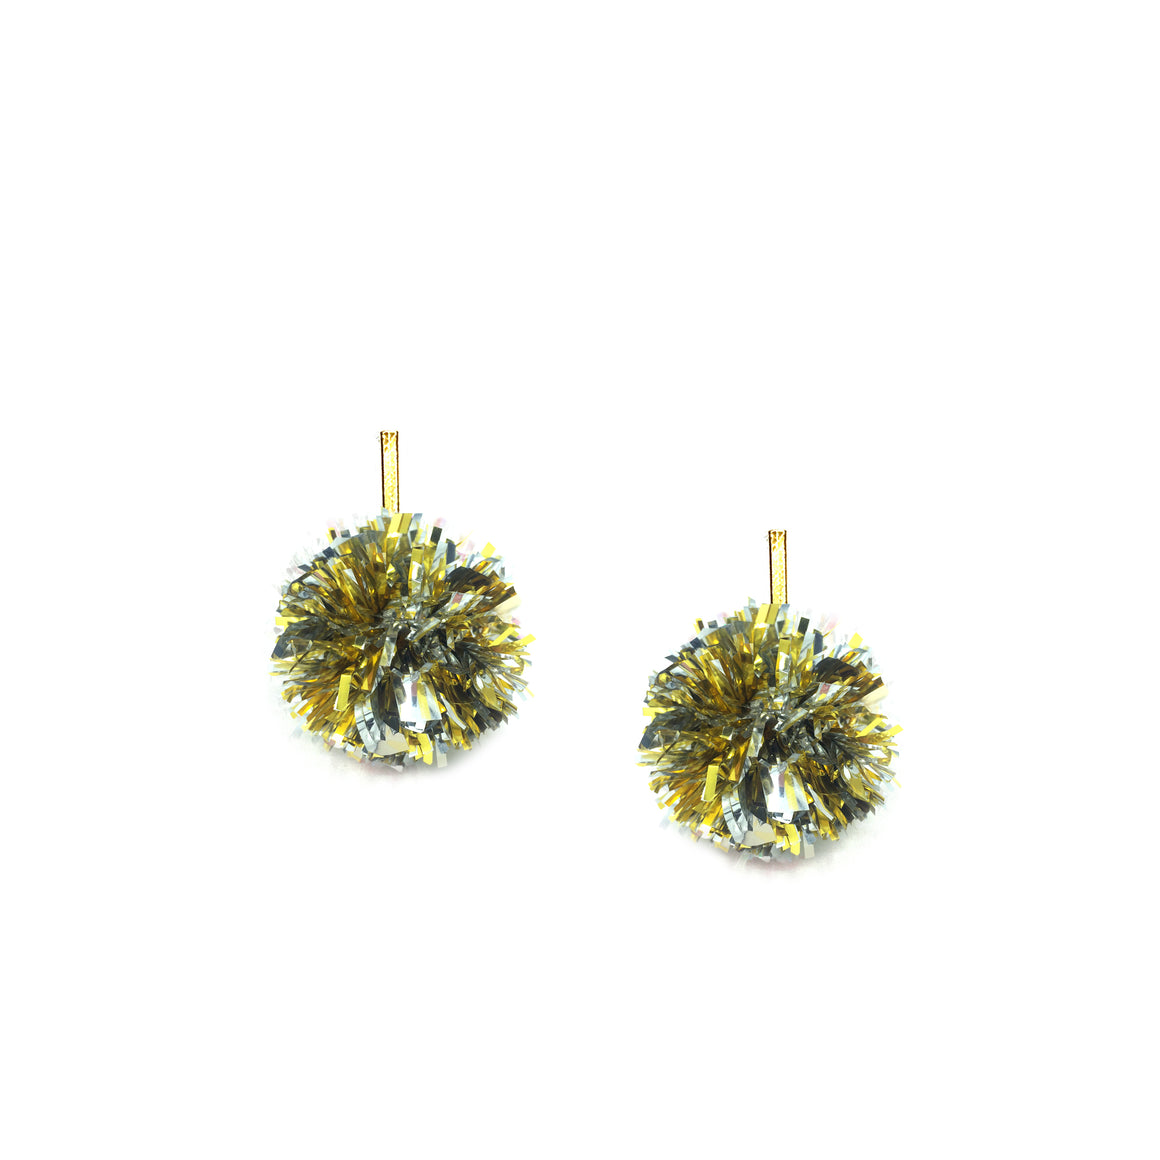 "1"" Gold and Silver Lurex Pom Pom Stud Earrings"